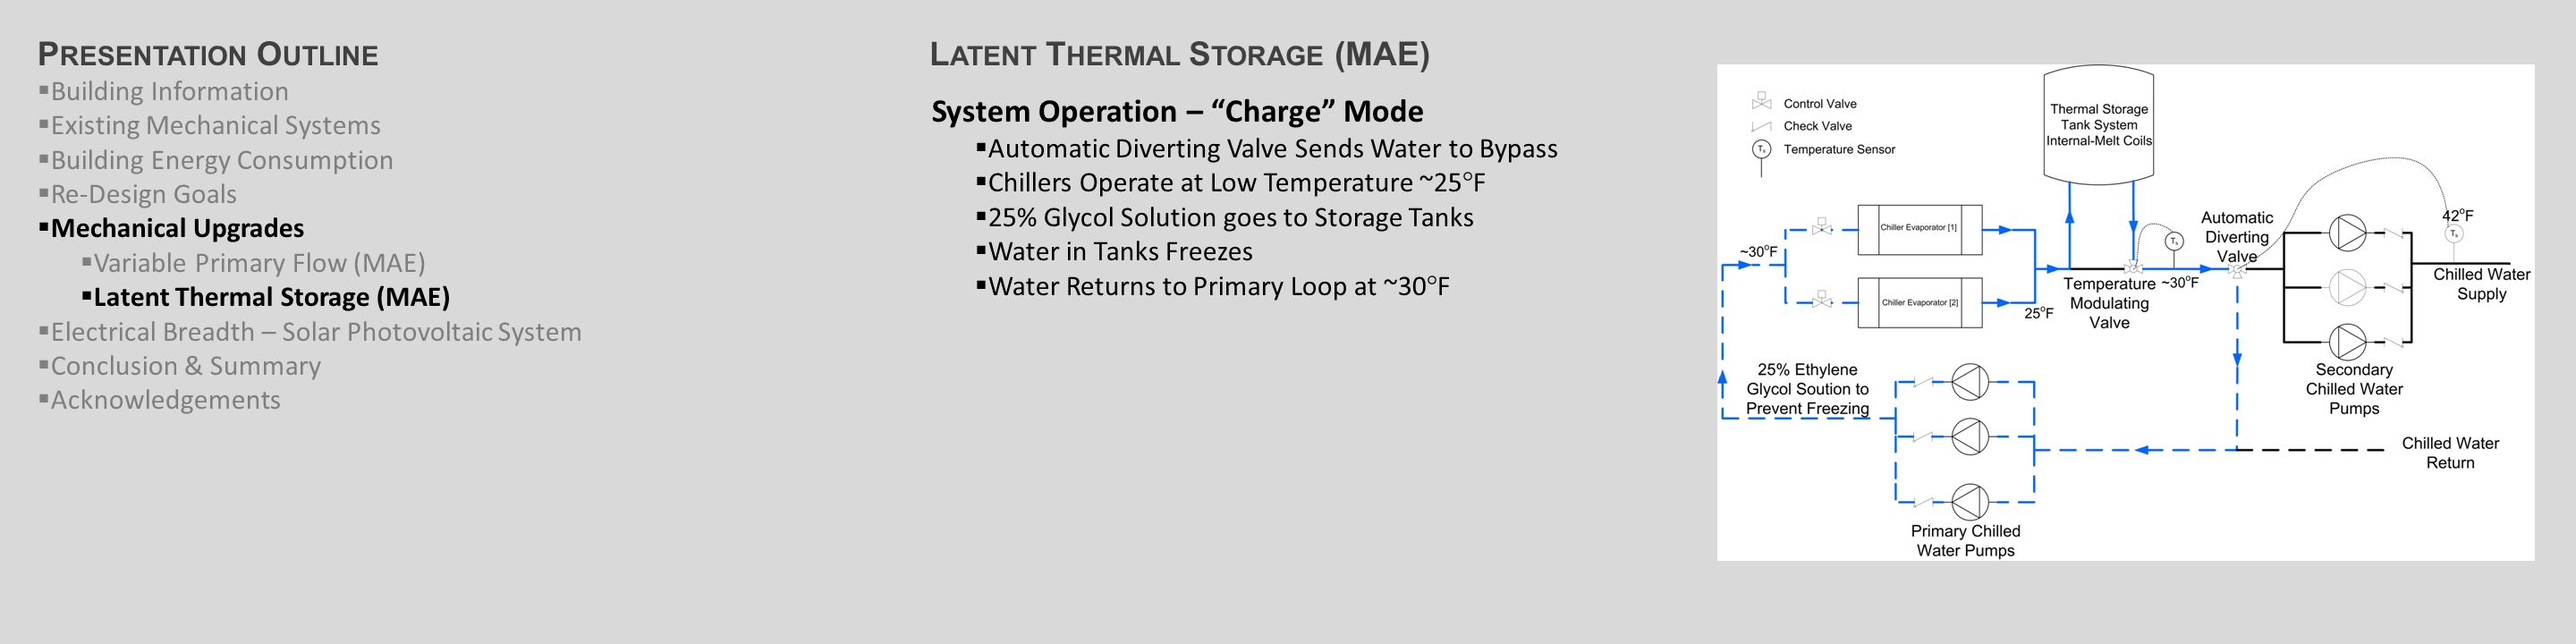 L ATENT T HERMAL S TORAGE (MAE) System Operation – Charge Mode  Automatic Diverting Valve Sends Water to Bypass  Chillers Operate at Low Temperature ~25°F  25% Glycol Solution goes to Storage Tanks  Water in Tanks Freezes  Water Returns to Primary Loop at ~30°F P RESENTATION O UTLINE  Building Information  Existing Mechanical Systems  Building Energy Consumption  Re-Design Goals  Mechanical Upgrades  Variable Primary Flow (MAE)  Latent Thermal Storage (MAE)  Electrical Breadth – Solar Photovoltaic System  Conclusion & Summary  Acknowledgements